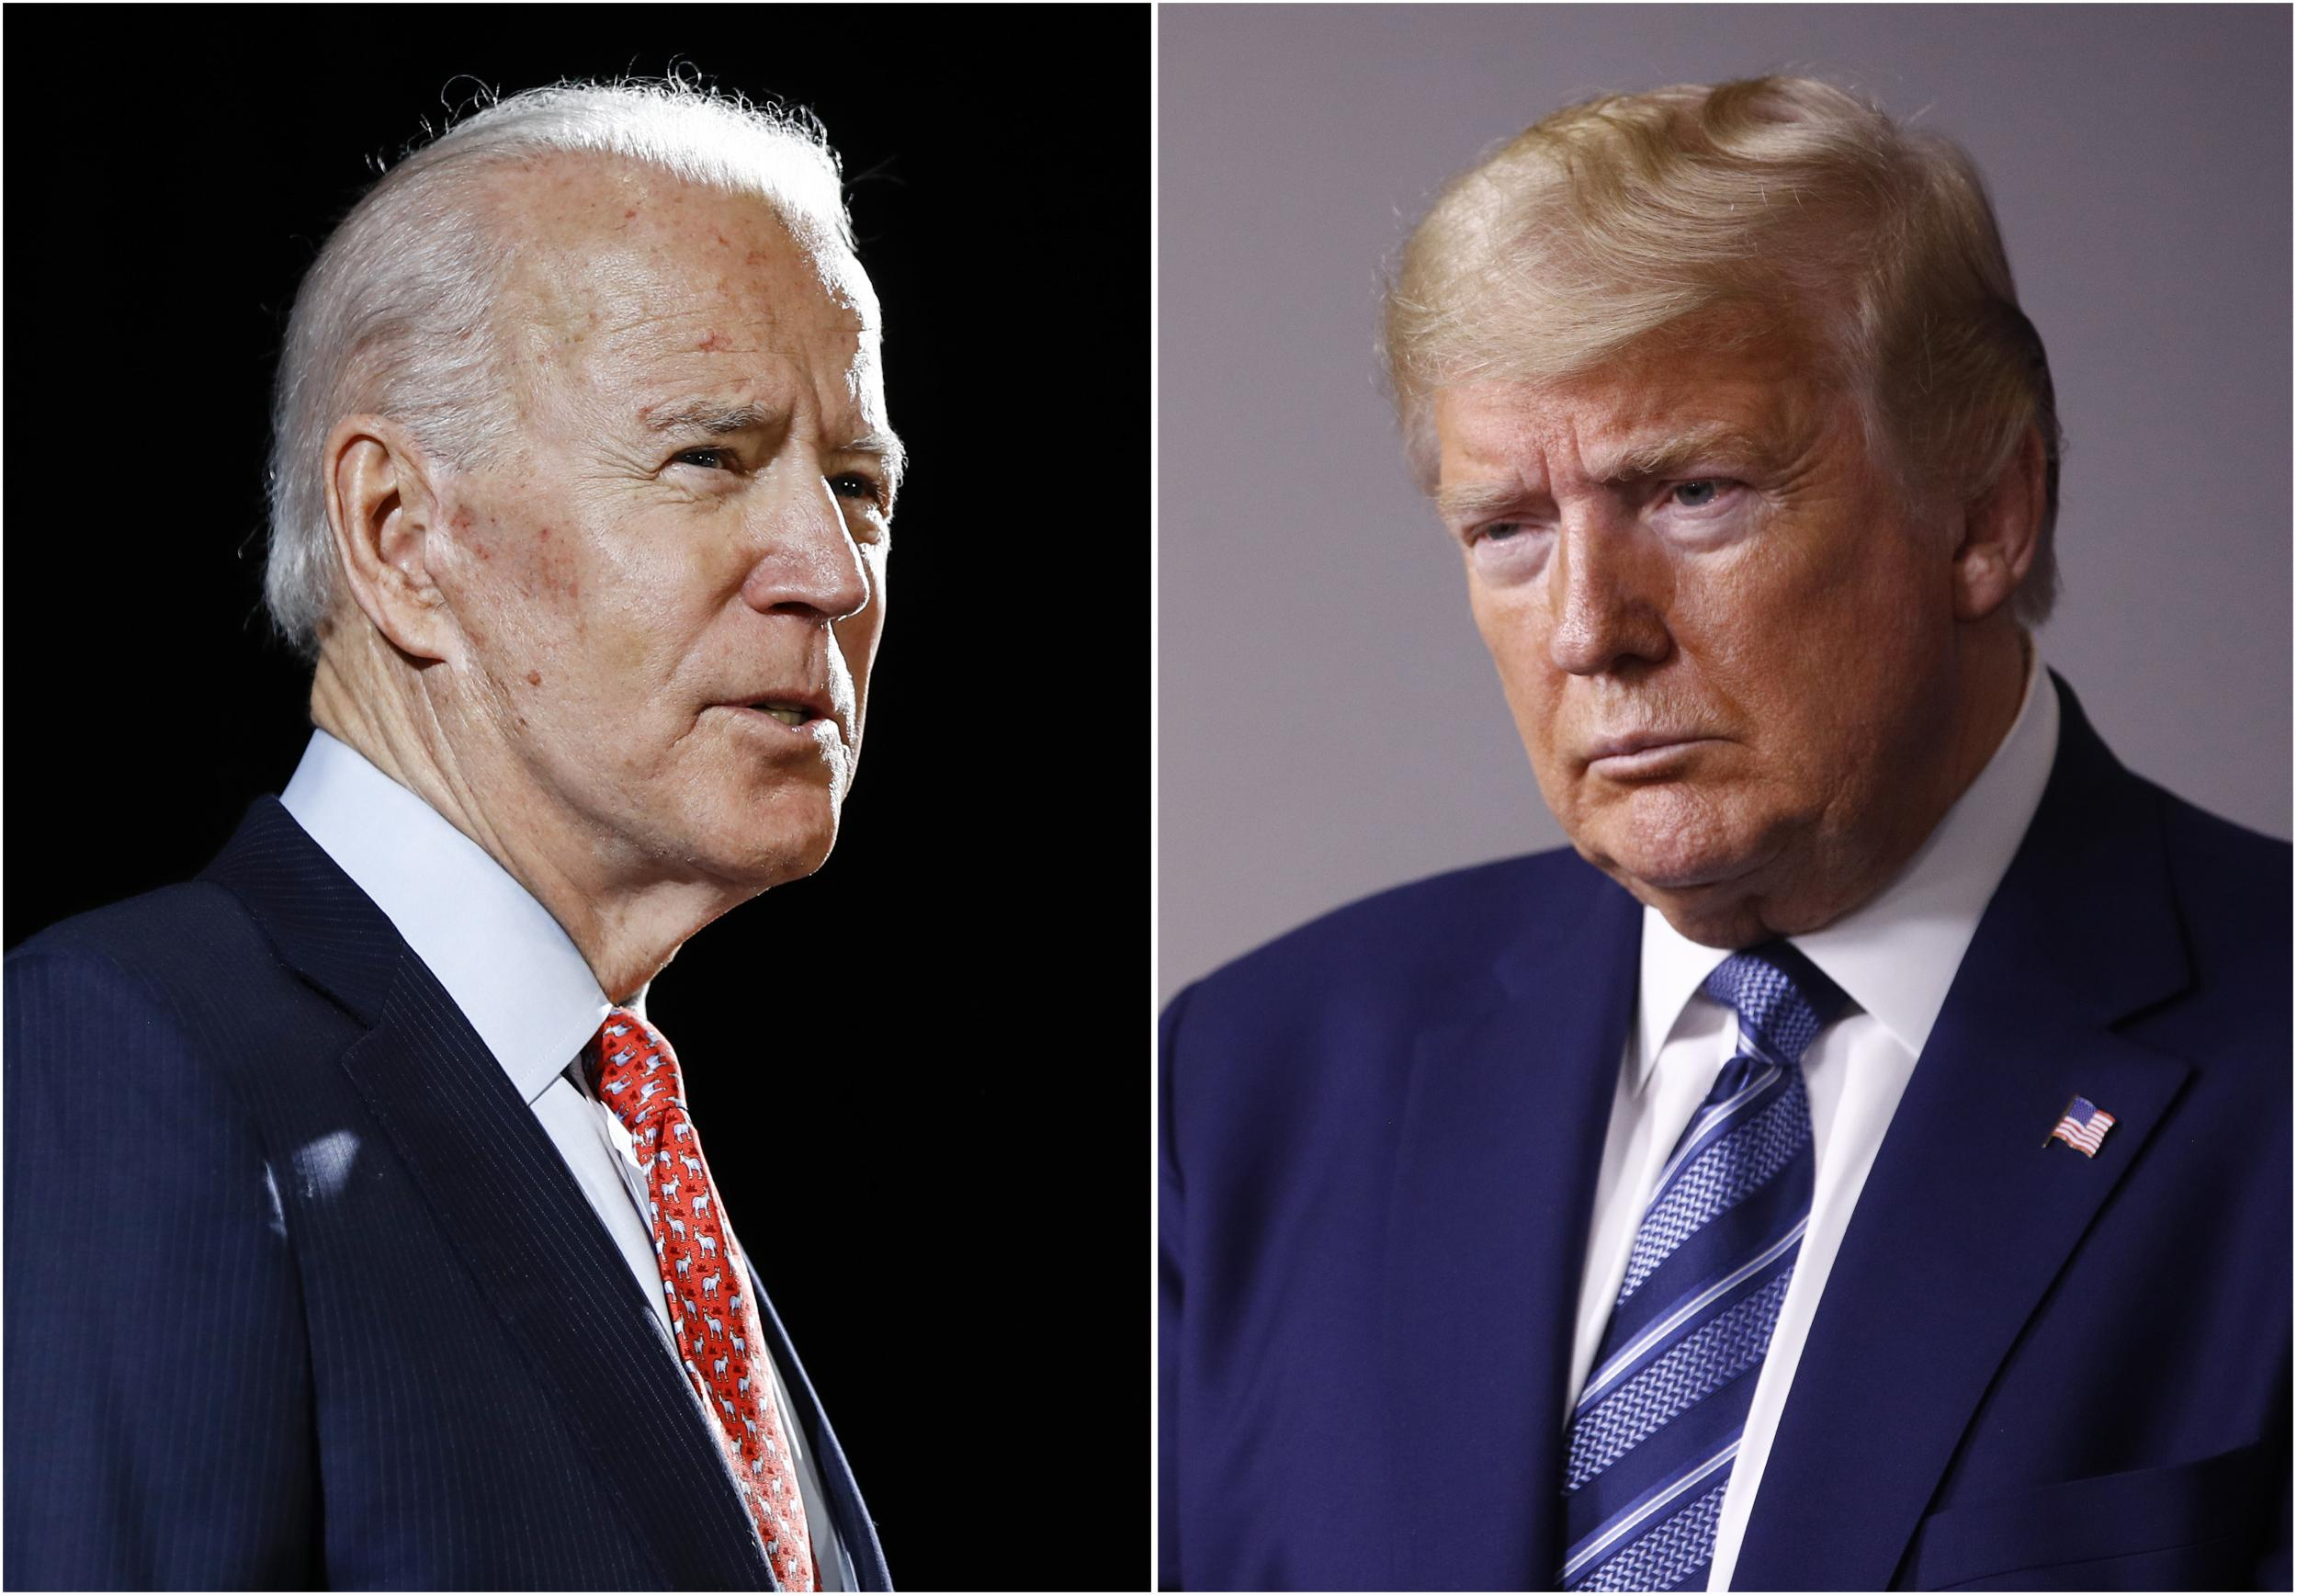 Trump And Biden Campaigns Exchange Attack Ads In Escalation Of 2020 Election The Independent The Independent